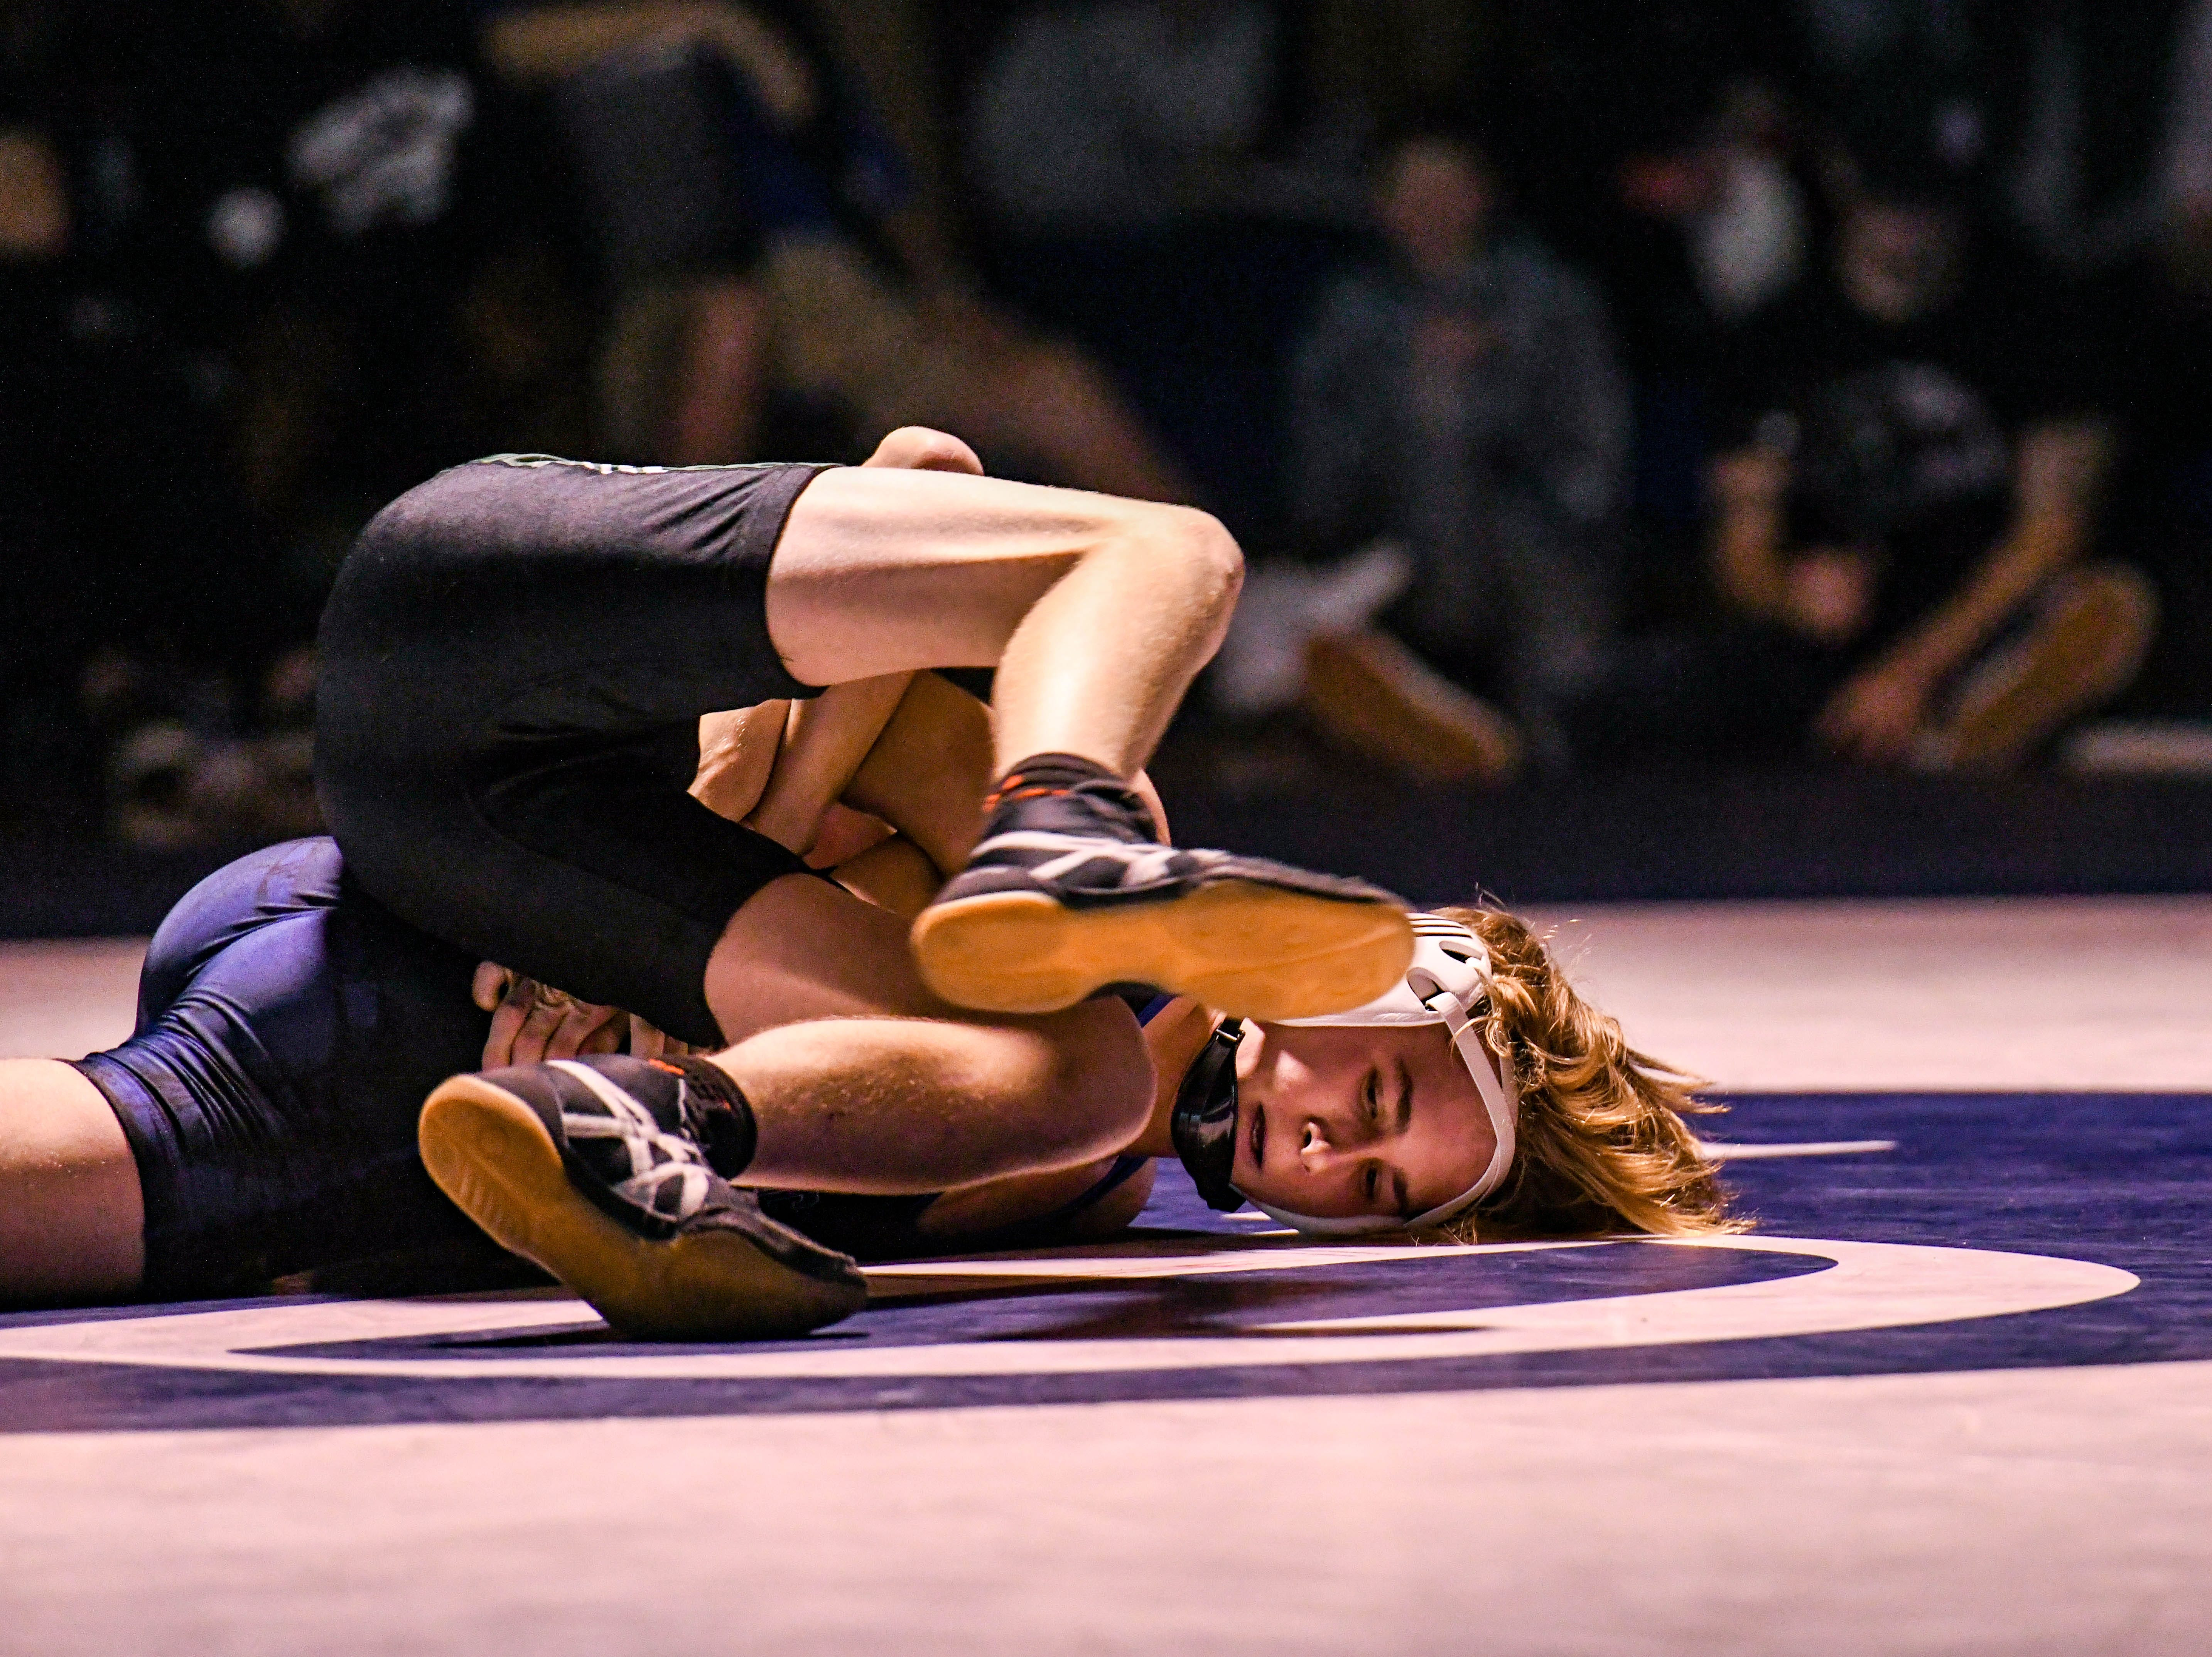 Stephen Decatur's Caleb Myers wrestles against Parkside's Landon Church in the 106 match up at Stephen Decatur High School on Wednesday, Jan. 23, 2019.